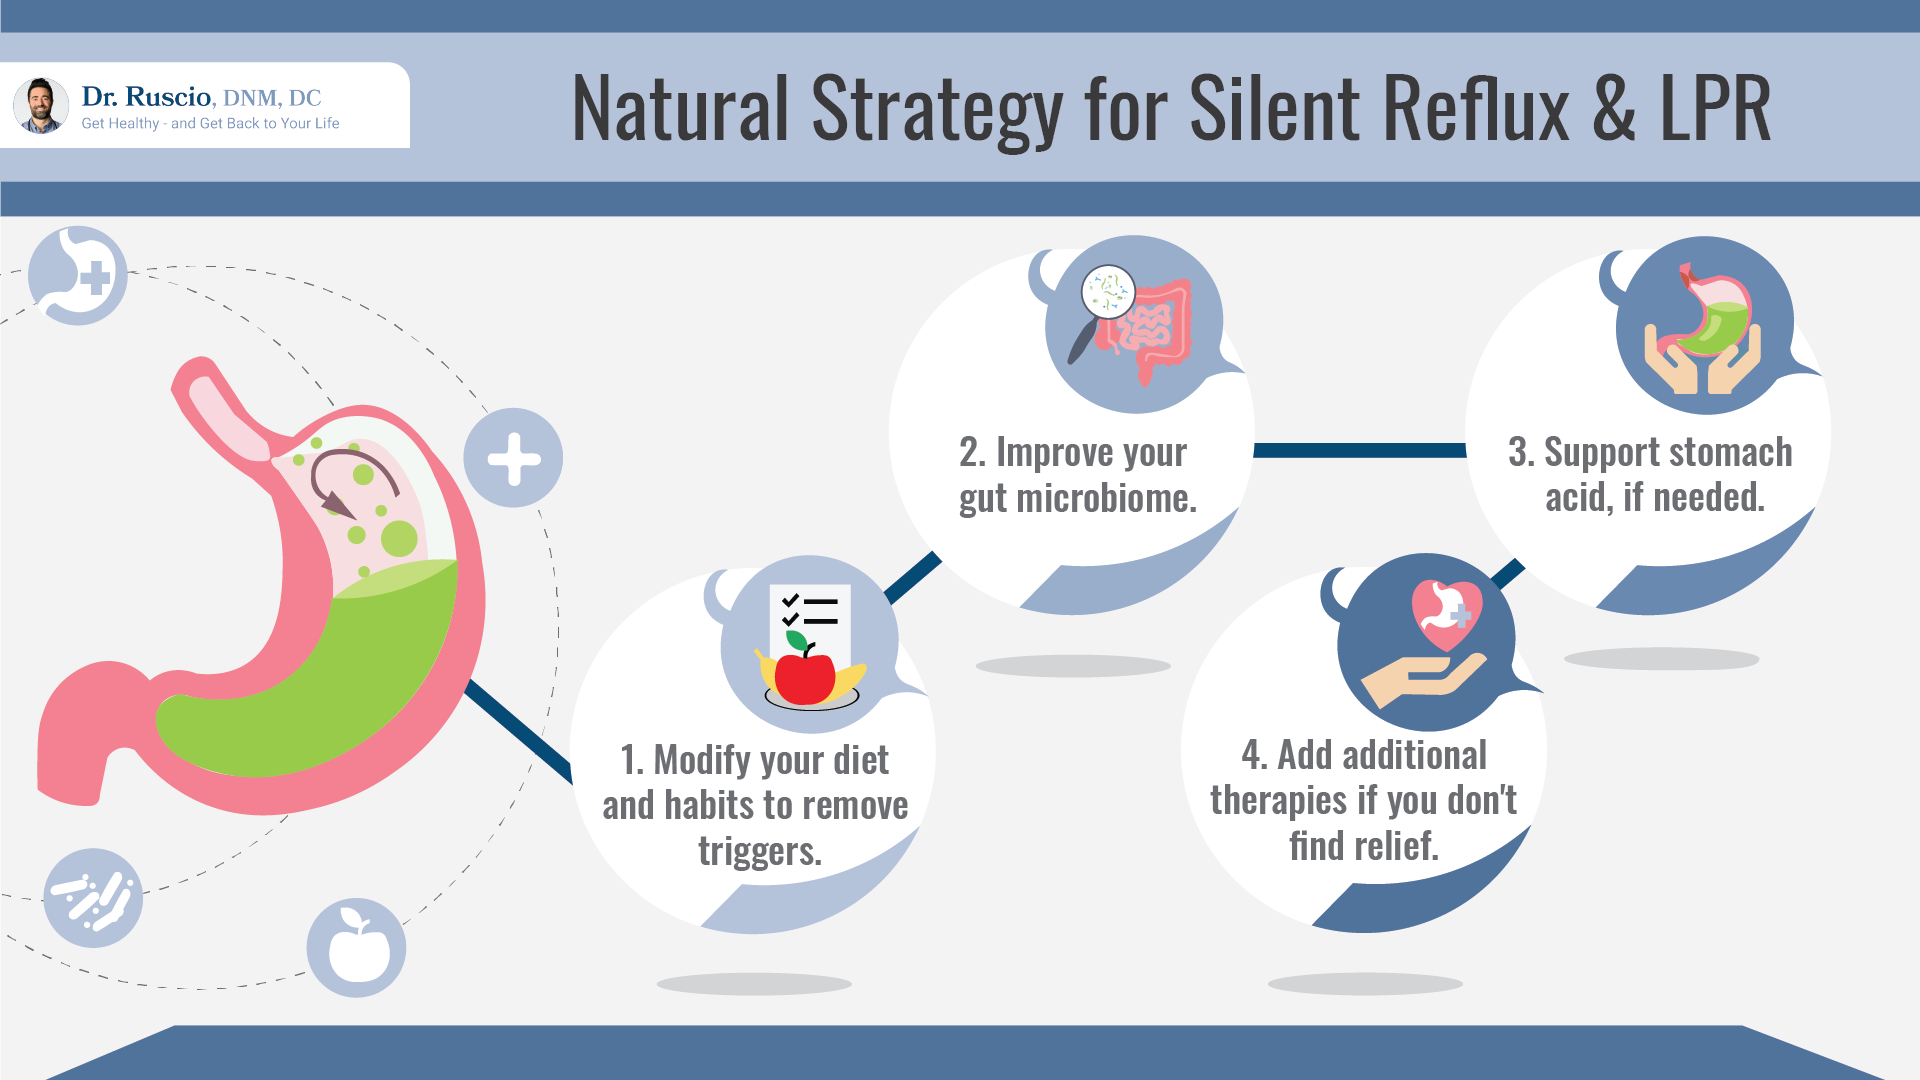 LPR treatment: Natural strategy for silent reflux & LPR infographic by Dr. Ruscio